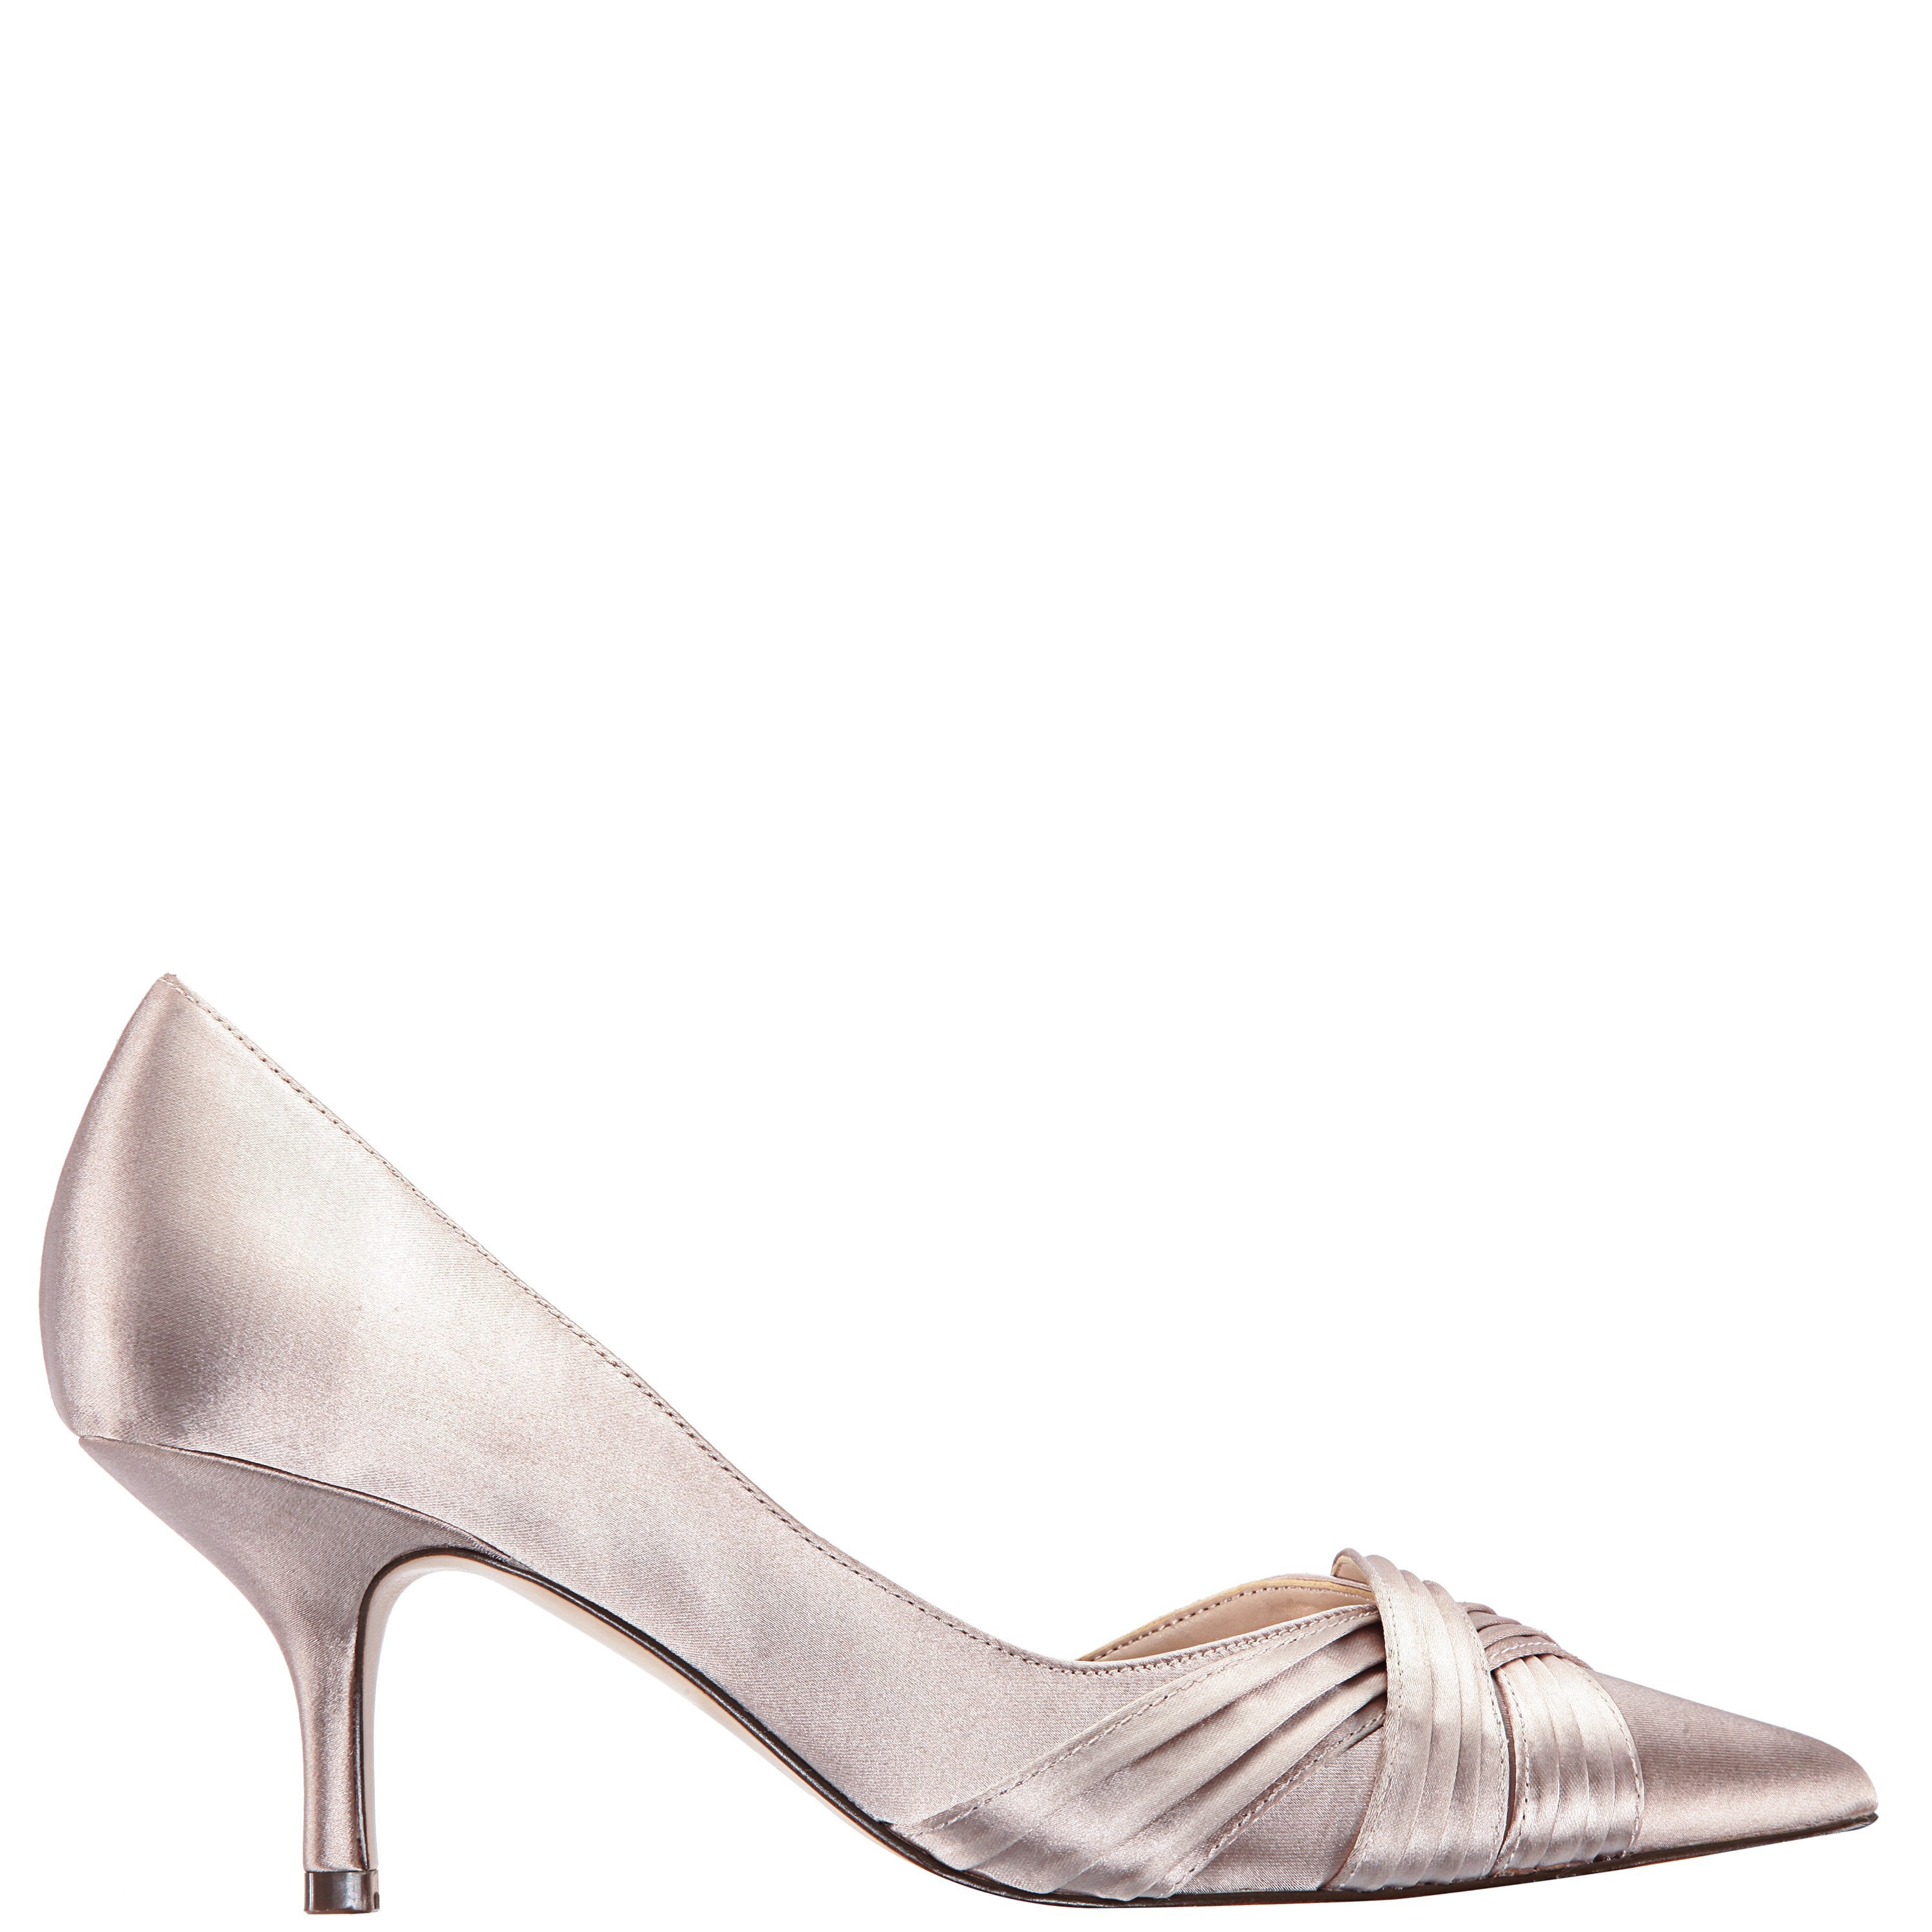 BLAKELY-TAUPE SATIN - TAUPE